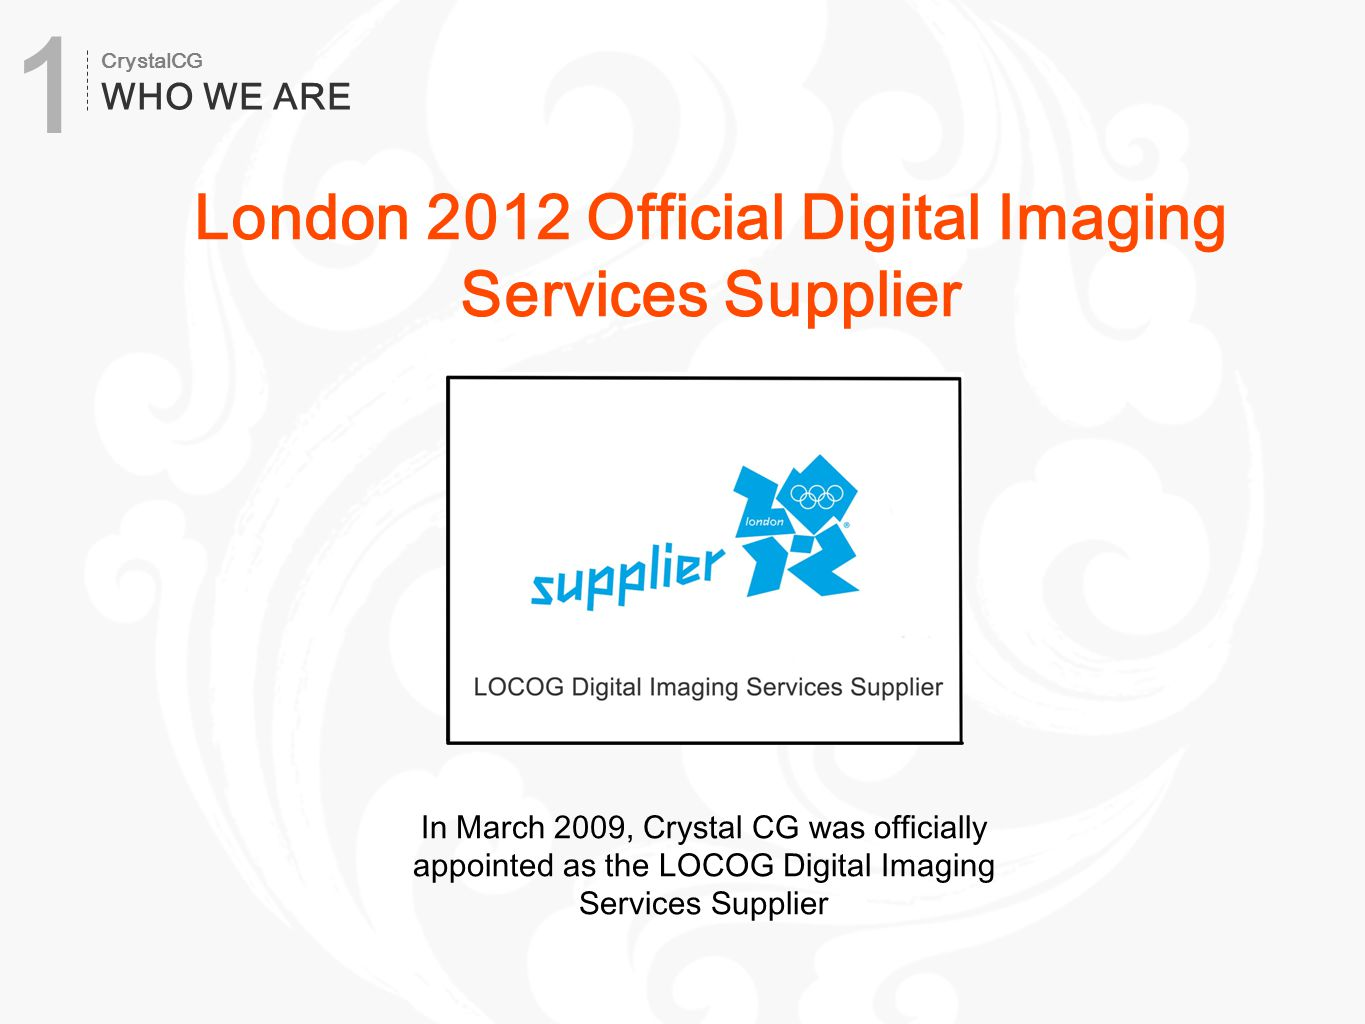 In March 2009, Crystal CG was officially appointed as the LOCOG Digital Imaging Services Supplier London 2012 Official Digital Imaging Services Supplier CrystalCG WHO WE ARE 1